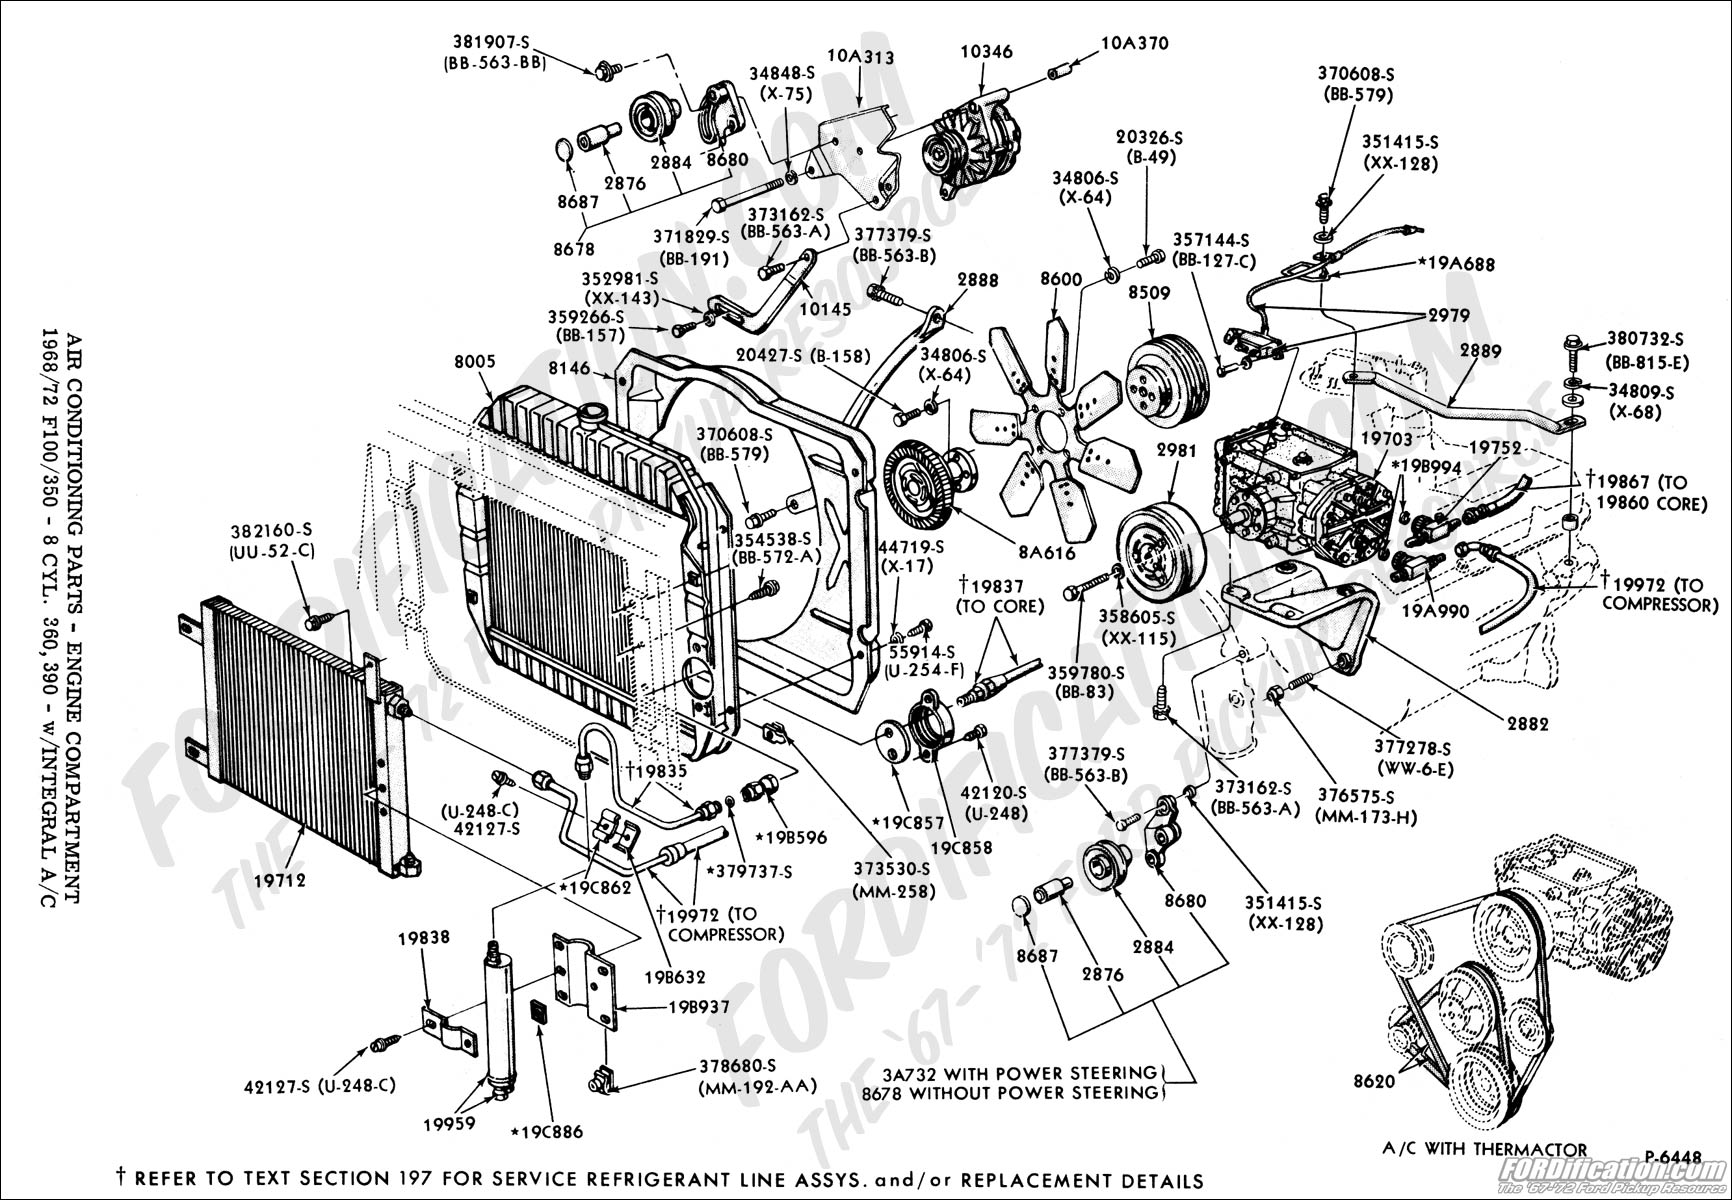 ac-engcomp_integral  Dodge Engine Bay Diagram on engine belt diagrams, acura engine diagrams, dodge firing order, mitsubishi engine diagrams, bmw engine diagrams, studebaker engine diagrams, toyota engine diagrams, engine breakdown diagrams, gm engine diagrams, dodge intrepid 2.7 timing marks, chevy engine diagrams, dodge starter diagram, kia engine diagrams, gmc engine diagrams, mopar engine diagrams, lamborghini engine diagrams, volvo engine diagrams, diesel engine diagrams, paccar engine diagrams, chrysler engine diagrams,